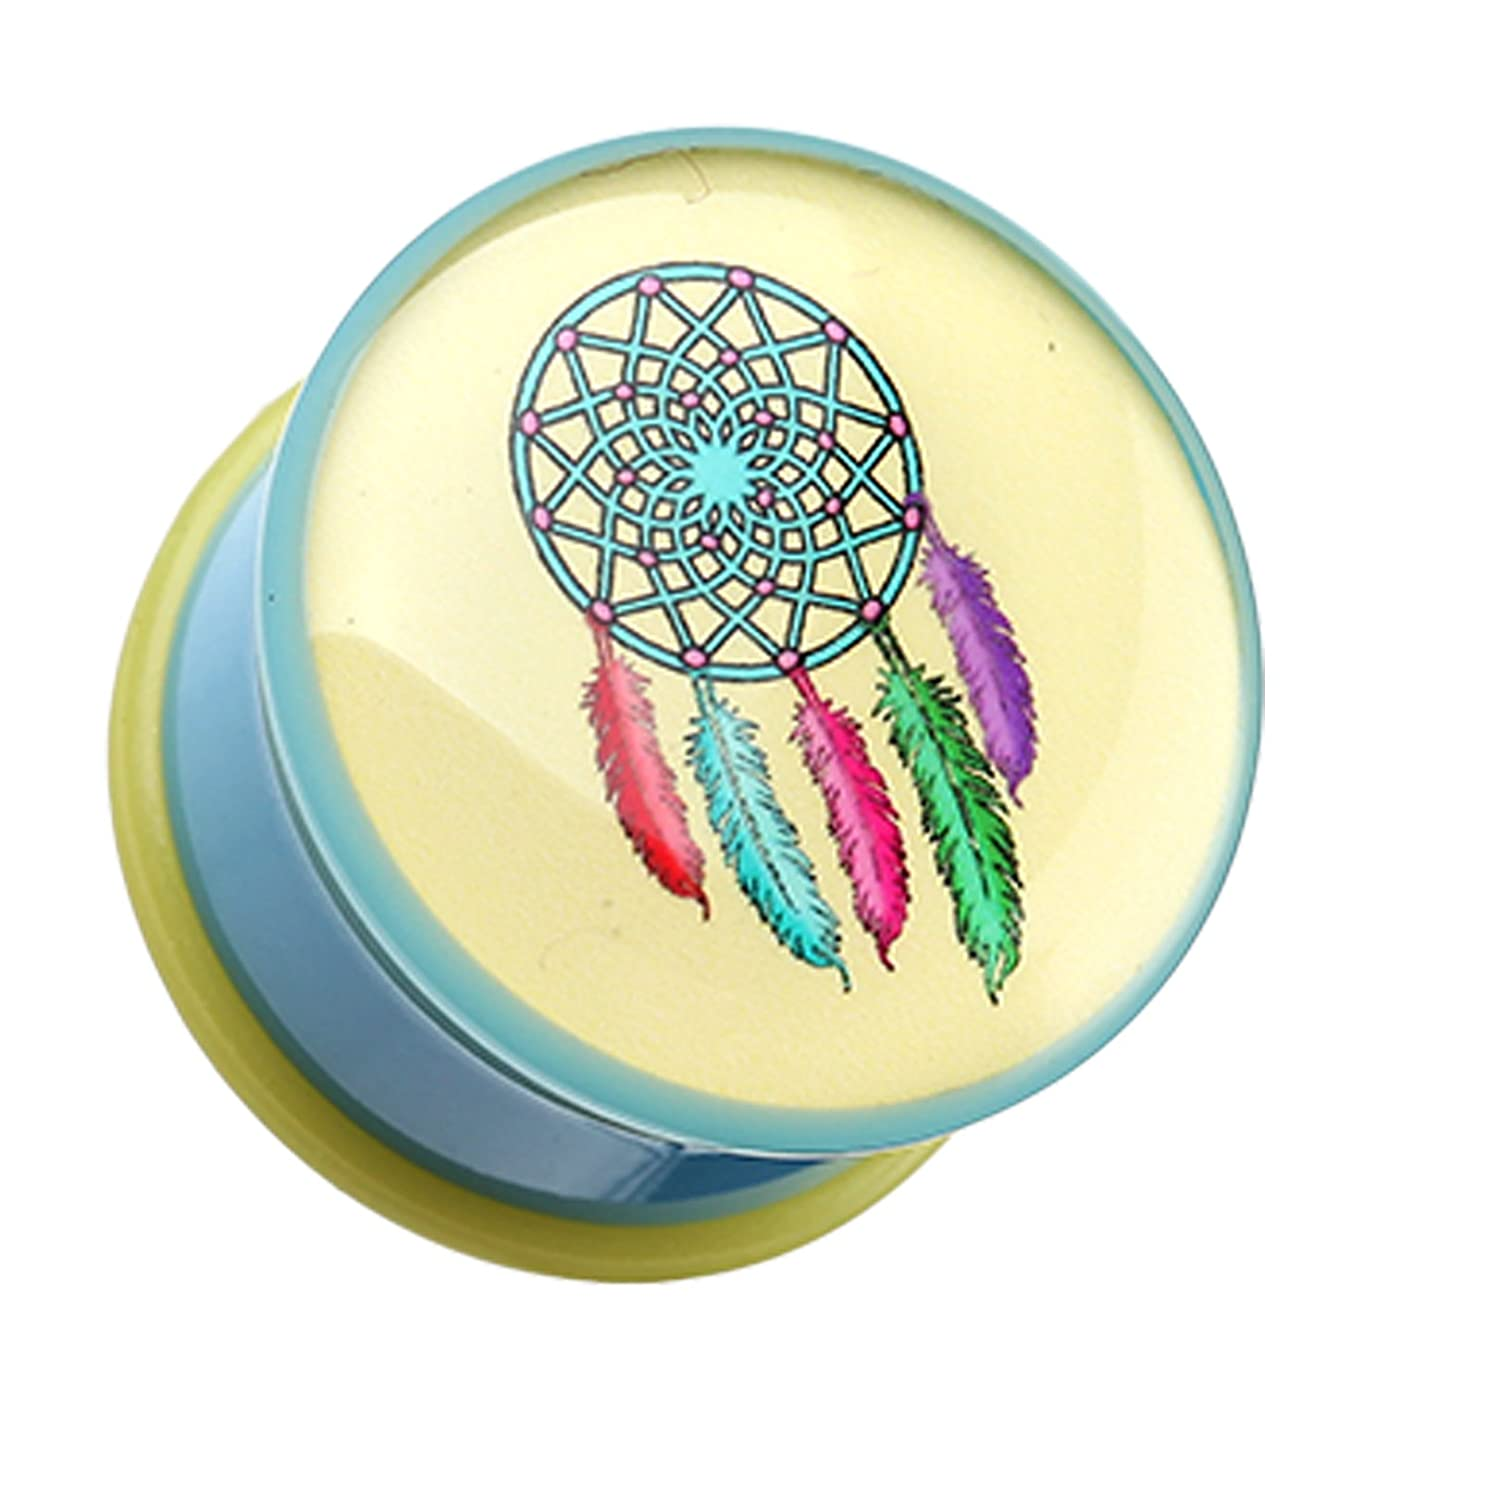 Plugs Retro Dream Catcher Single Flared Ear Gauge Plug Sold as a Pair Cosmic